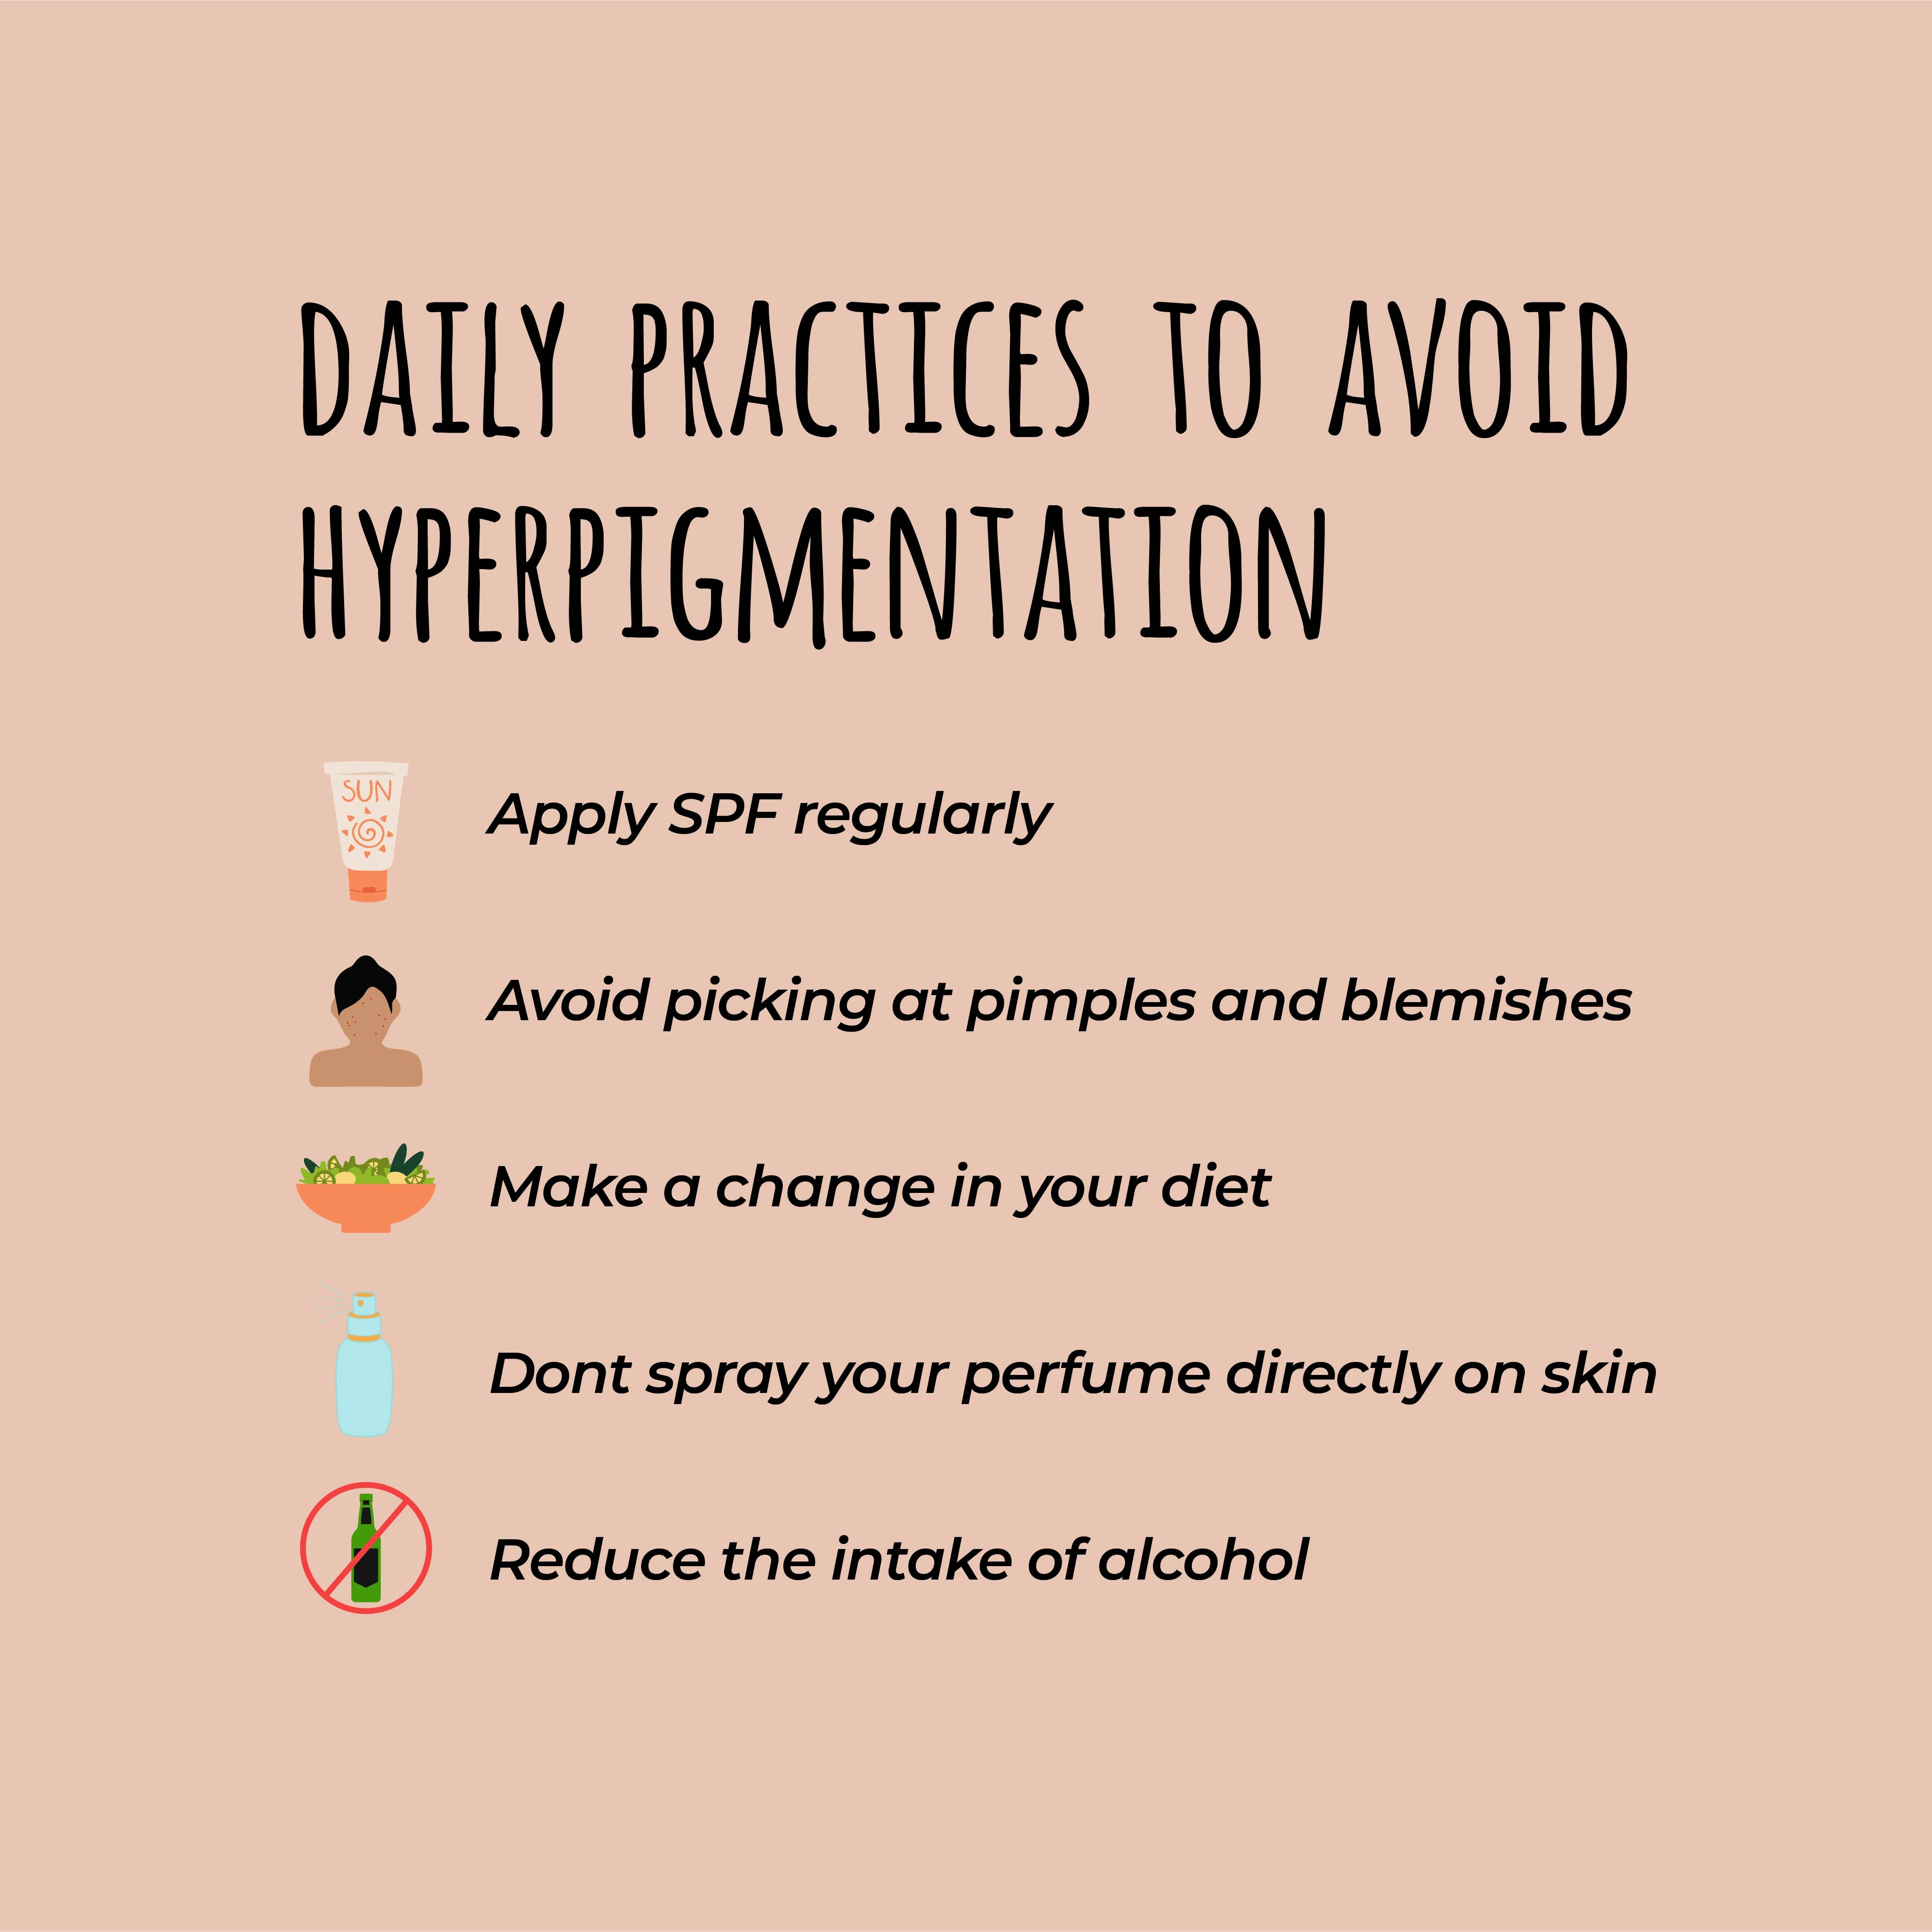 This is an image of daily practices to avoid pigmentation